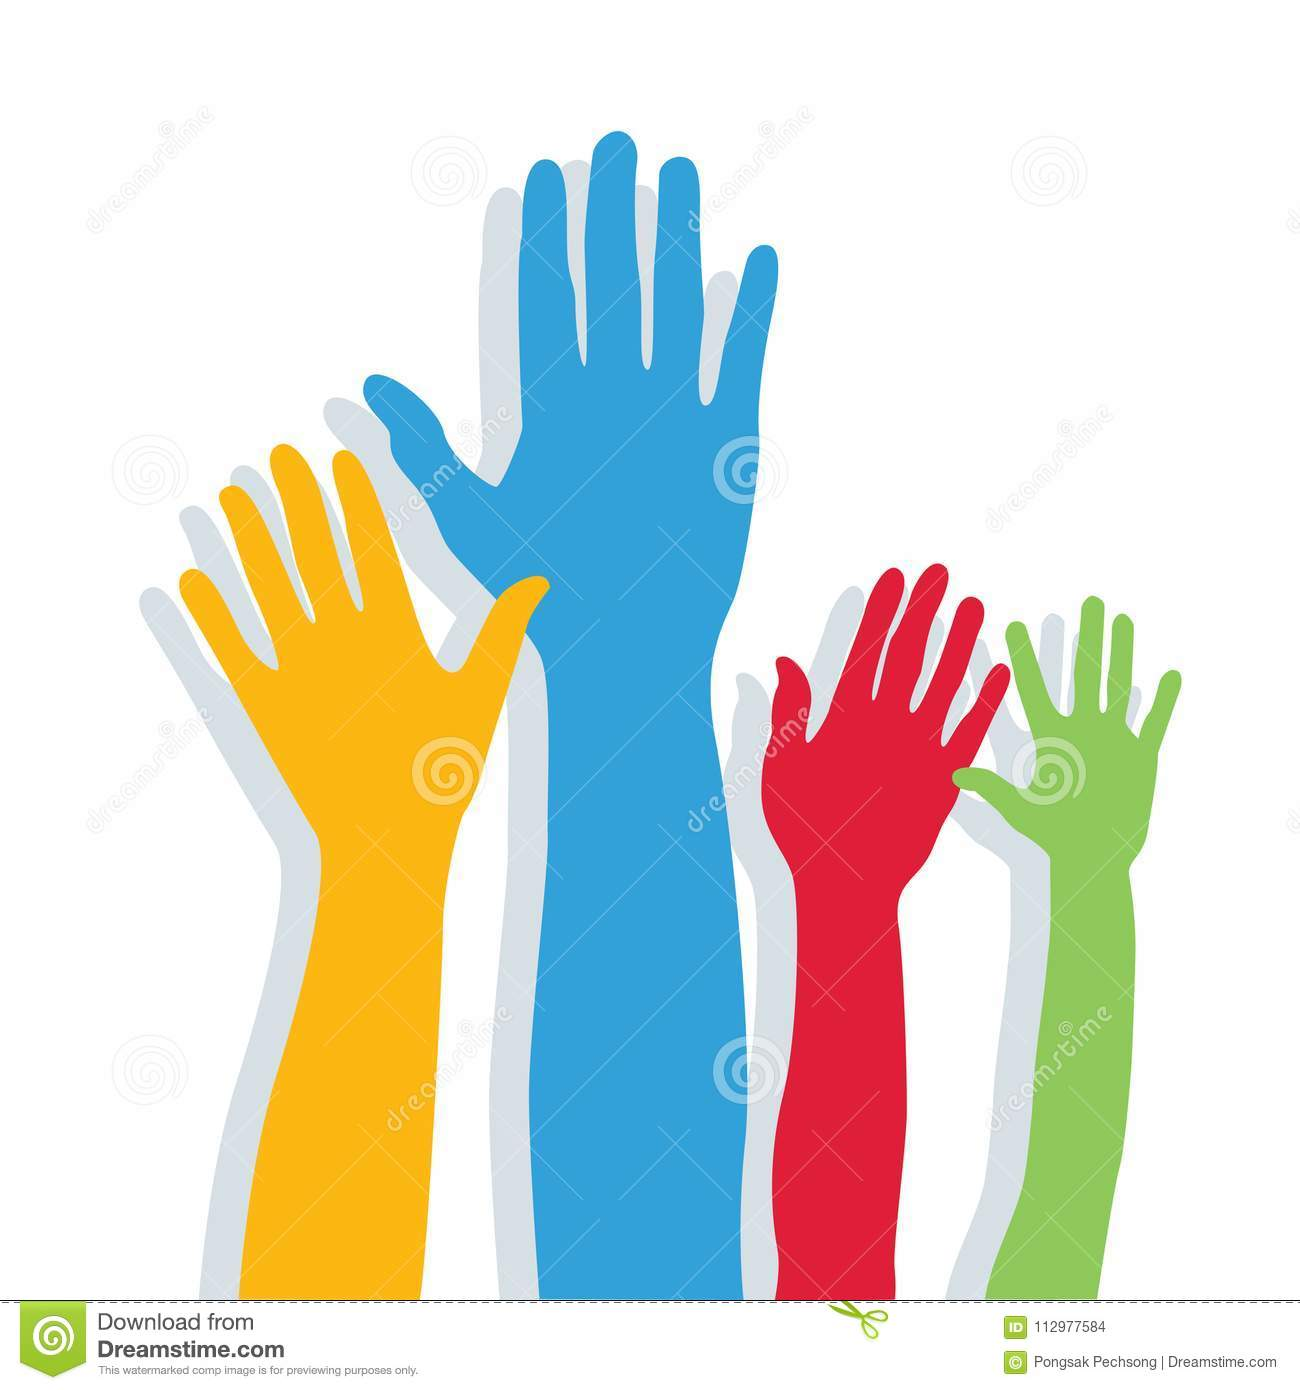 Hands of different colors. cultural and ethnic diversity.